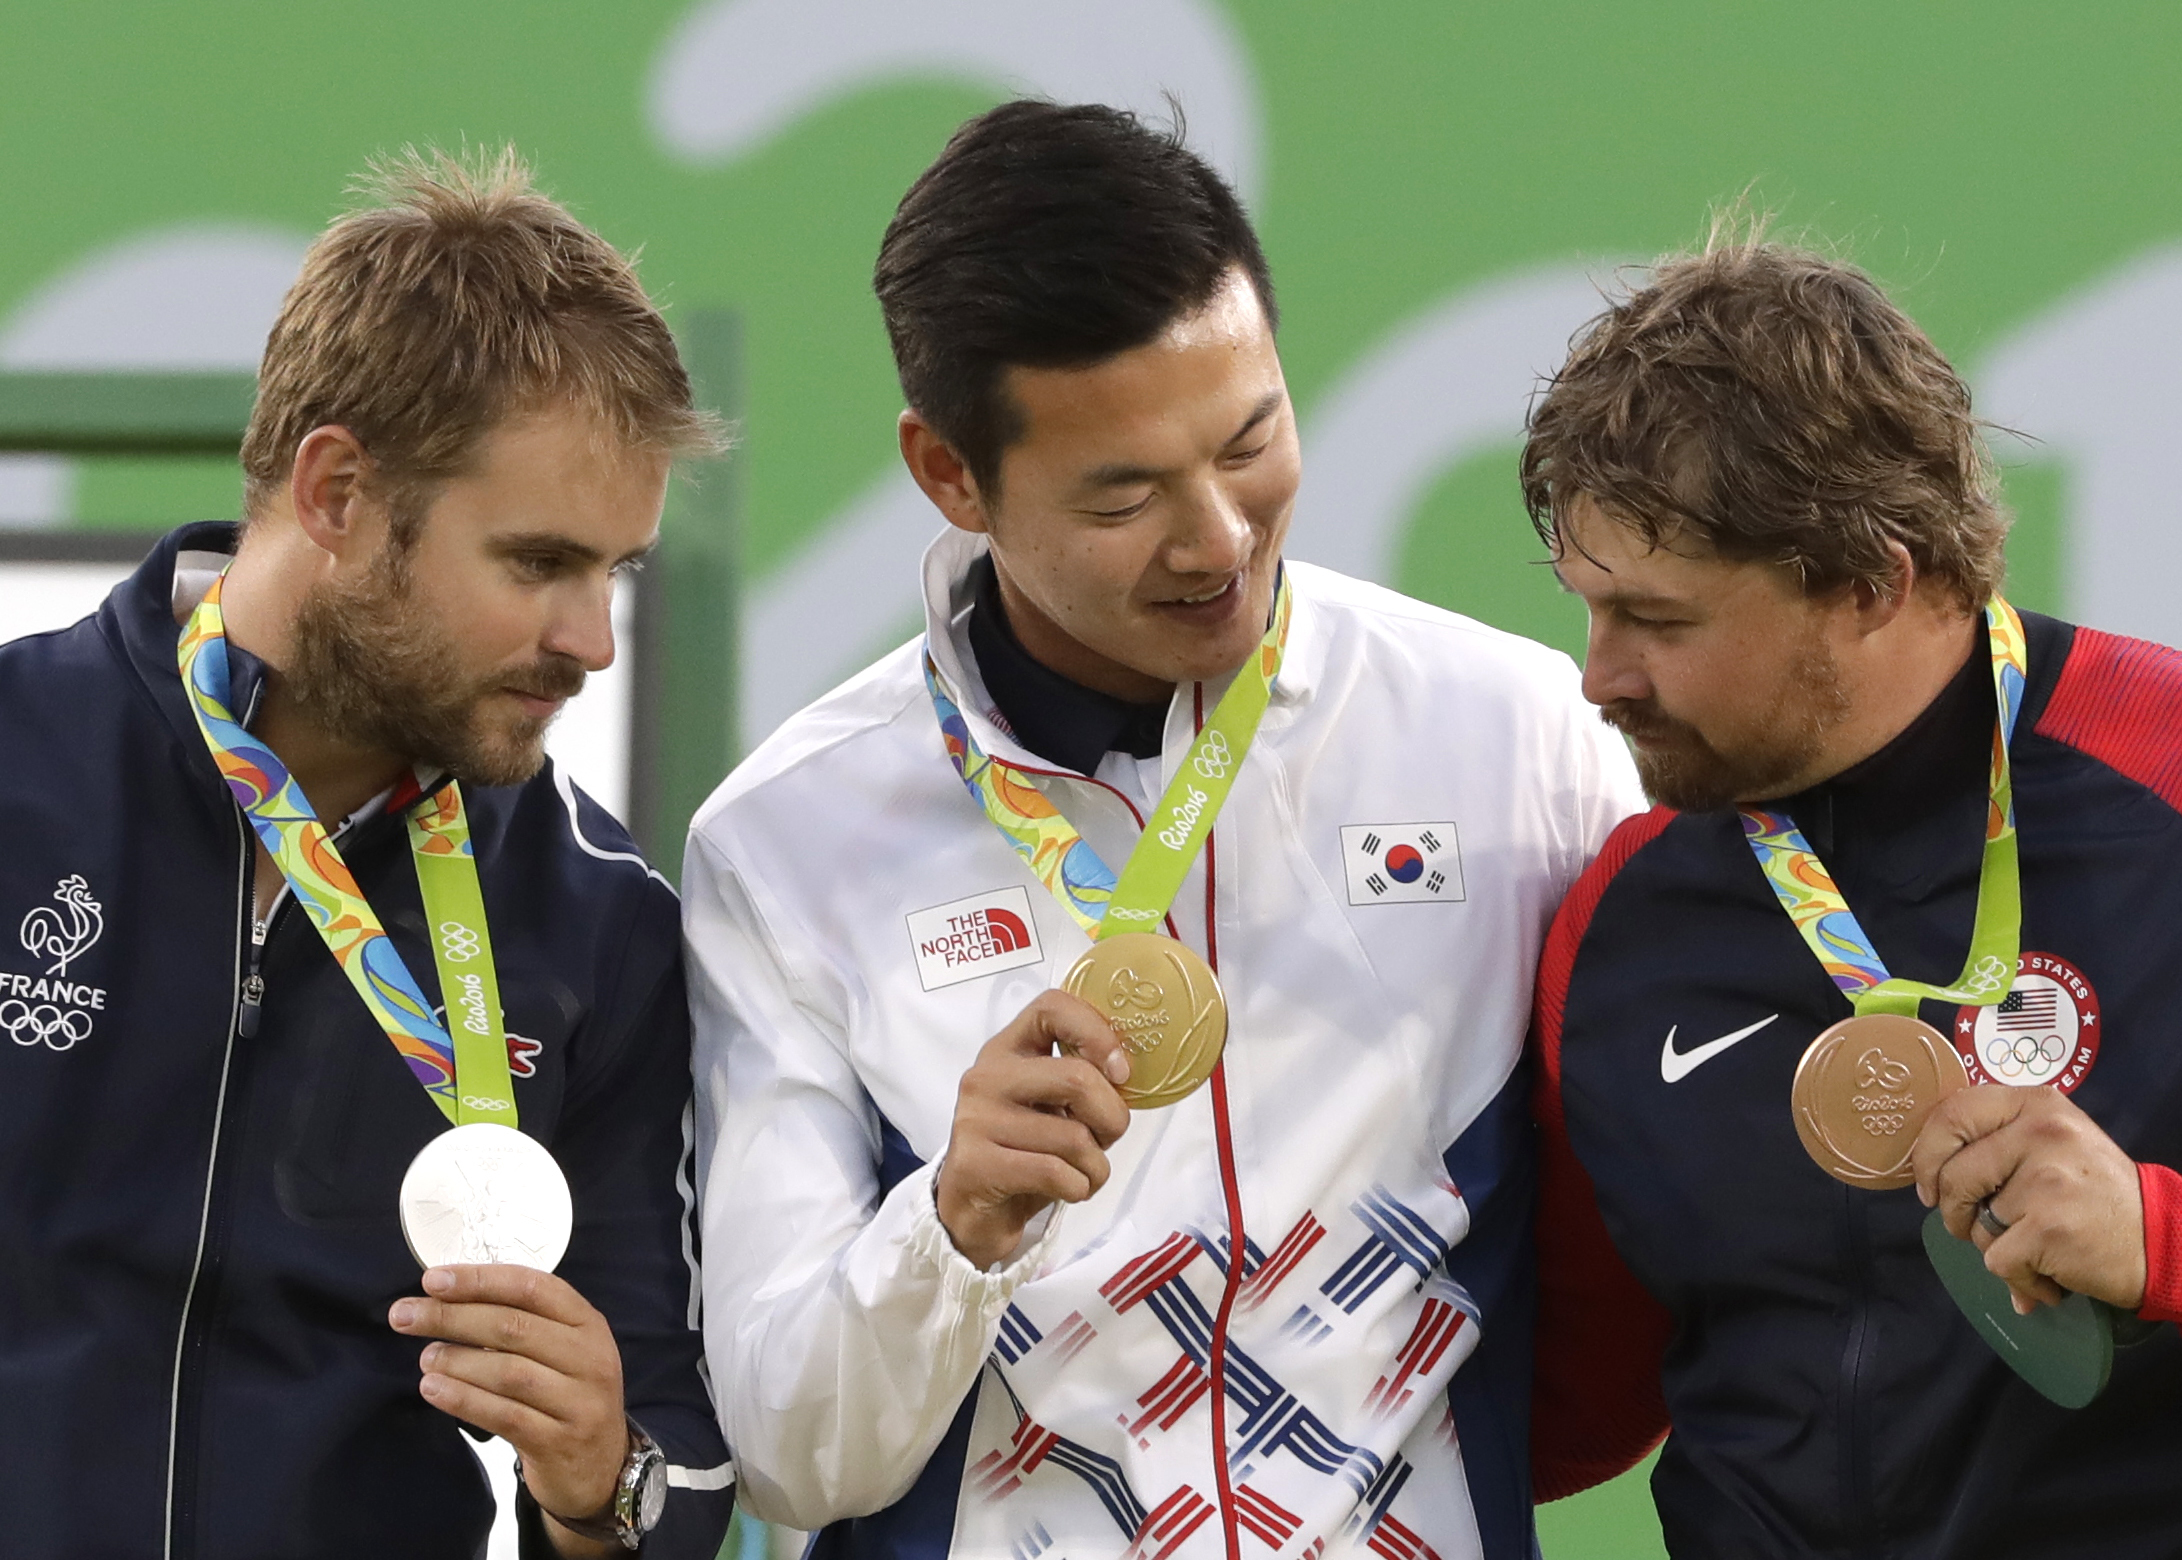 Gold medal winner Ku Bon-chan of South Korea, center, celebrates on the podium with silver medalist Jean Charles Valladont, left, and bronze medalist Brady Ellison of the United States at the awards ceremony of the men's individual archery competition at